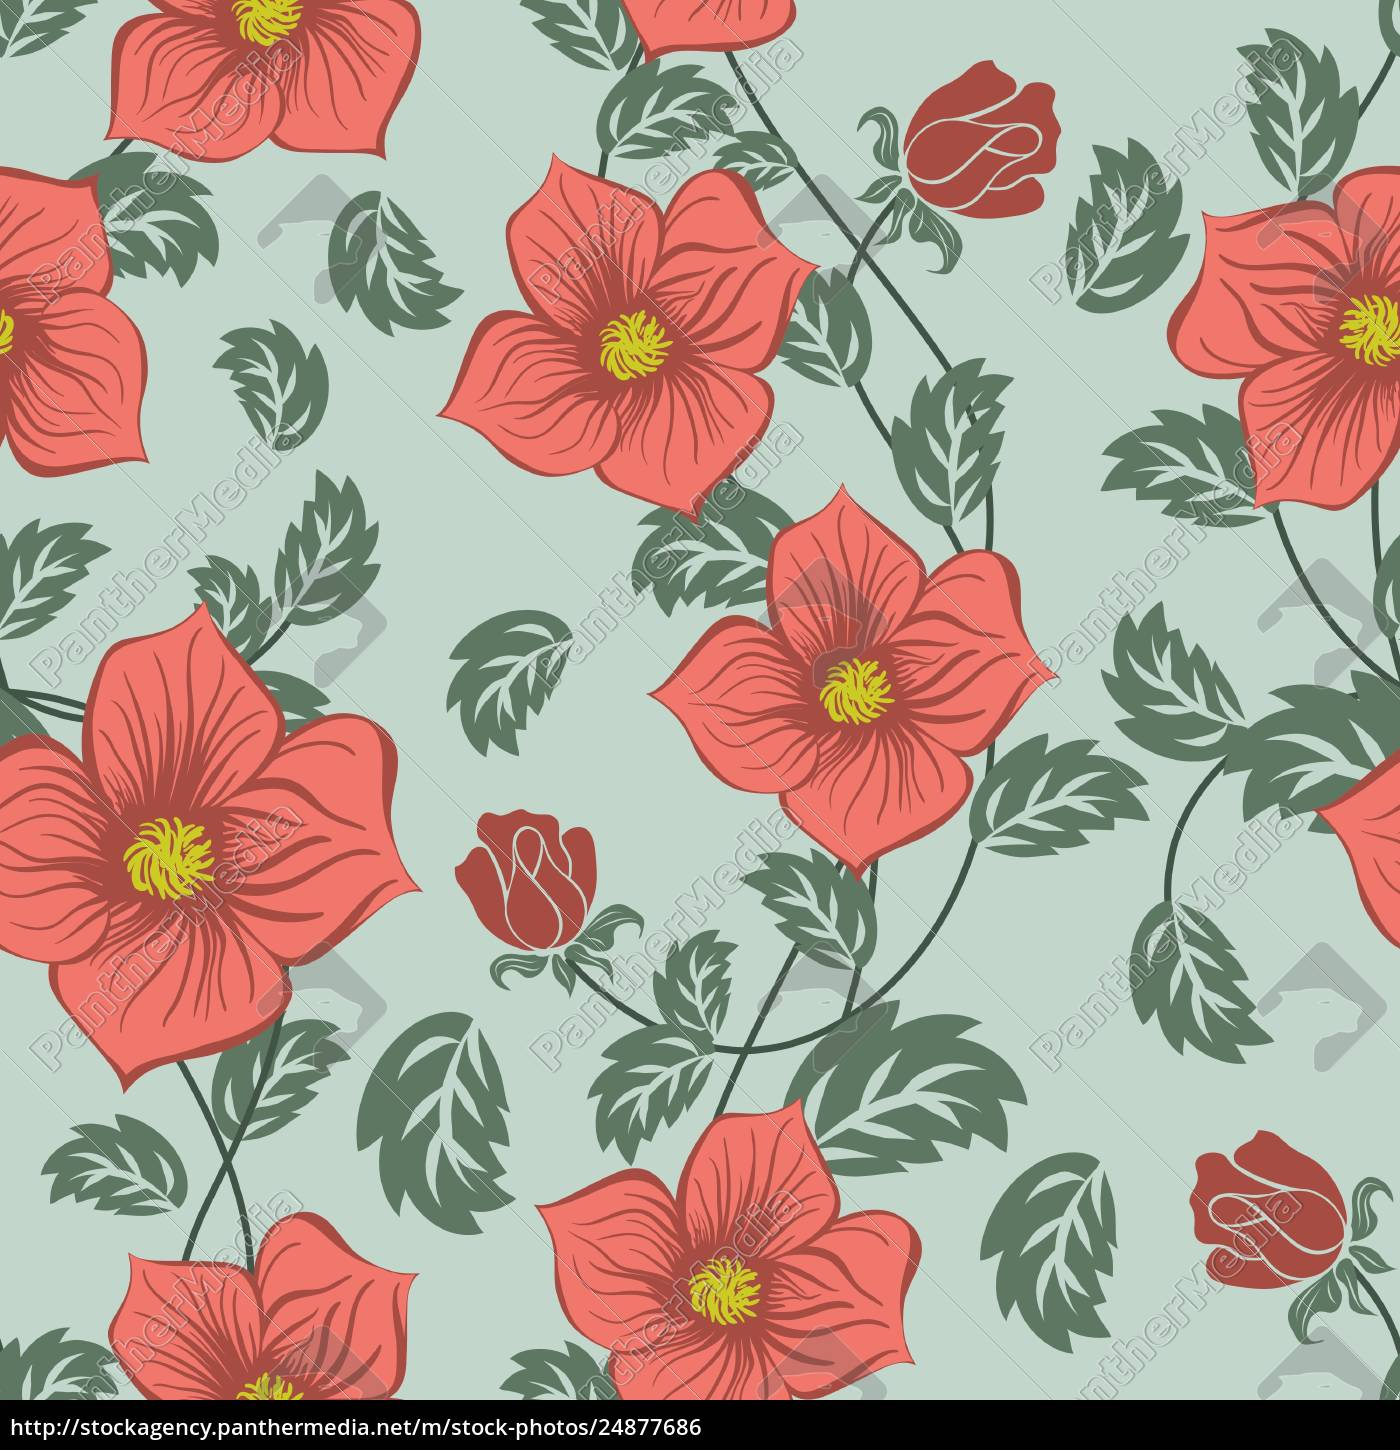 seamless, floral, ornate, , pattern - 24877686